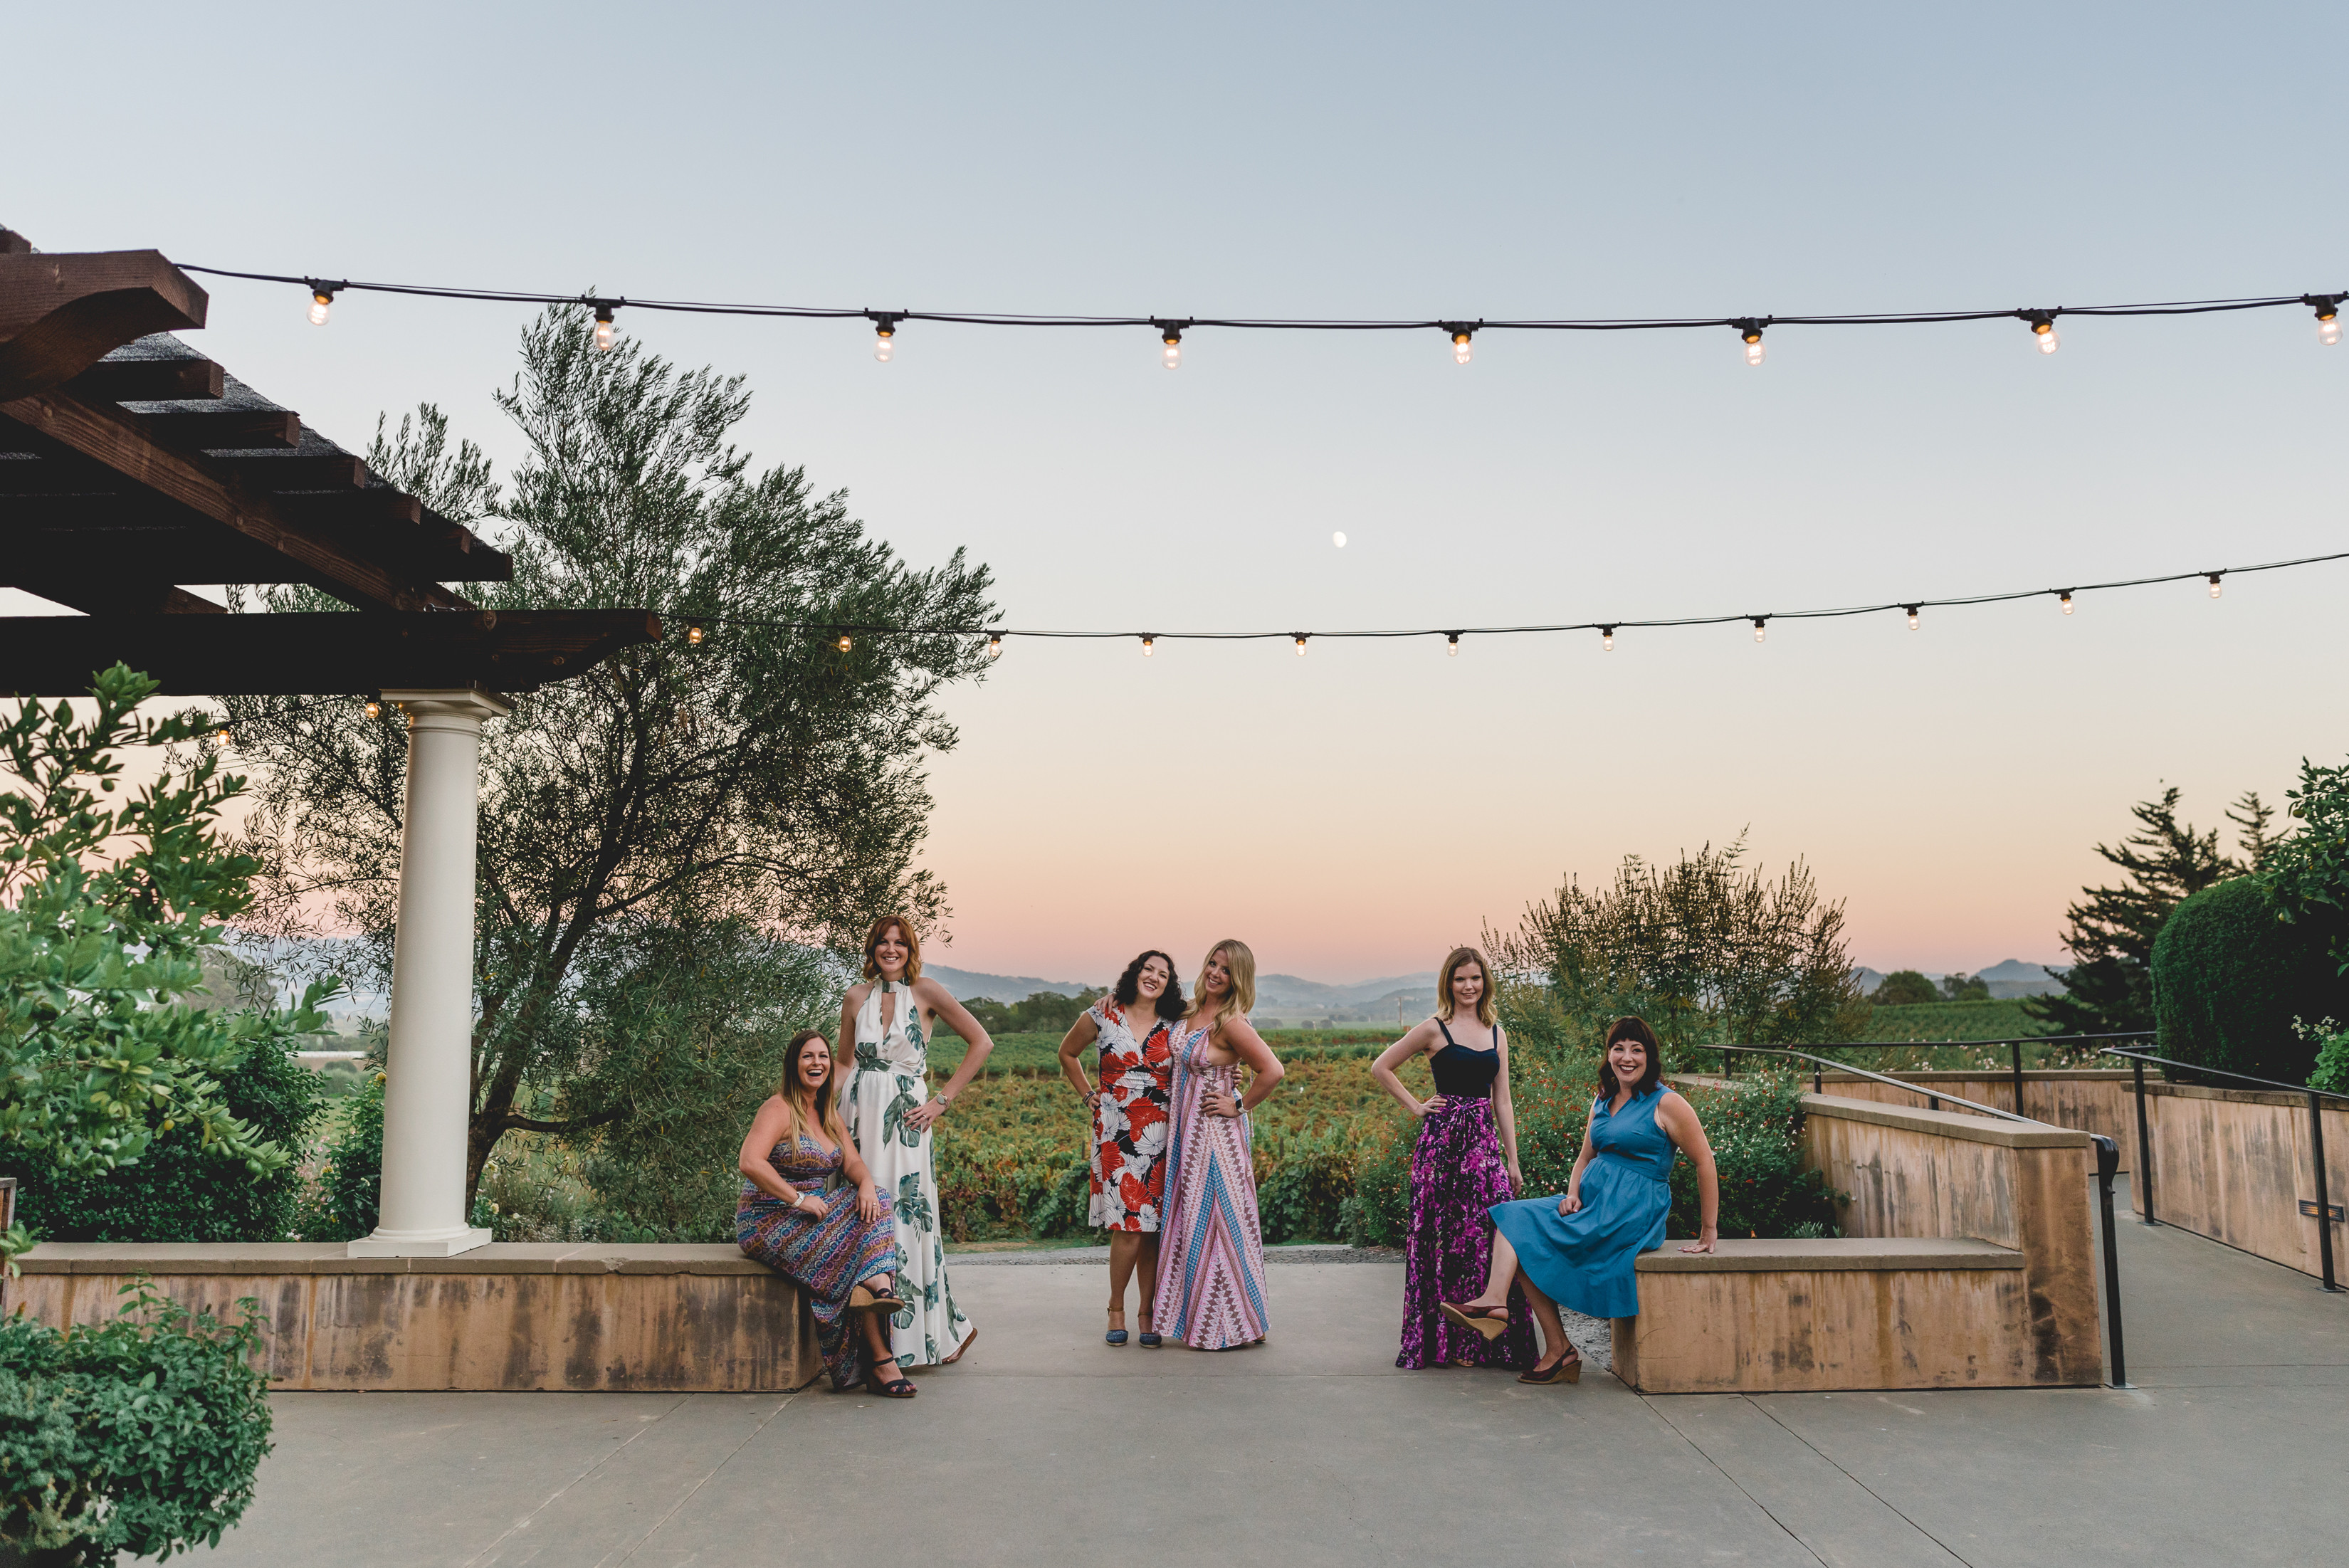 Chill Bachelorette Party Ideas  5 Chill Bachelorette Getaways for Maxing and Relaxing